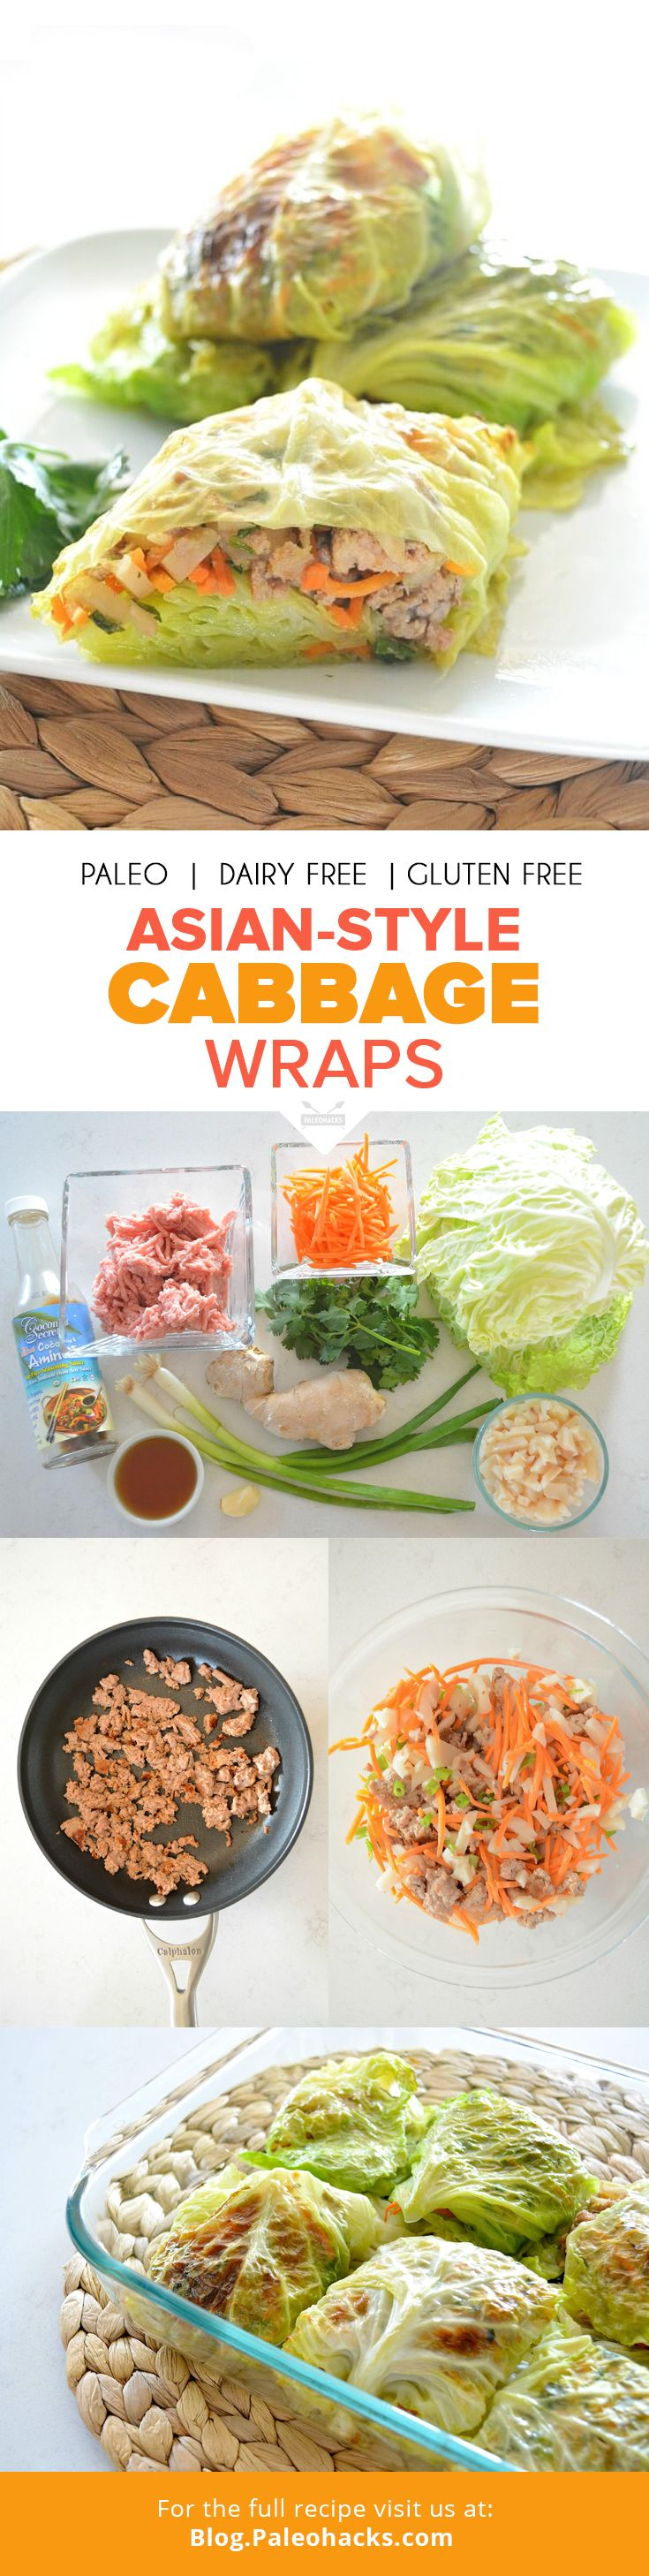 Asian-Style Cabbage Wraps   #justeatrealfood #paleohacks